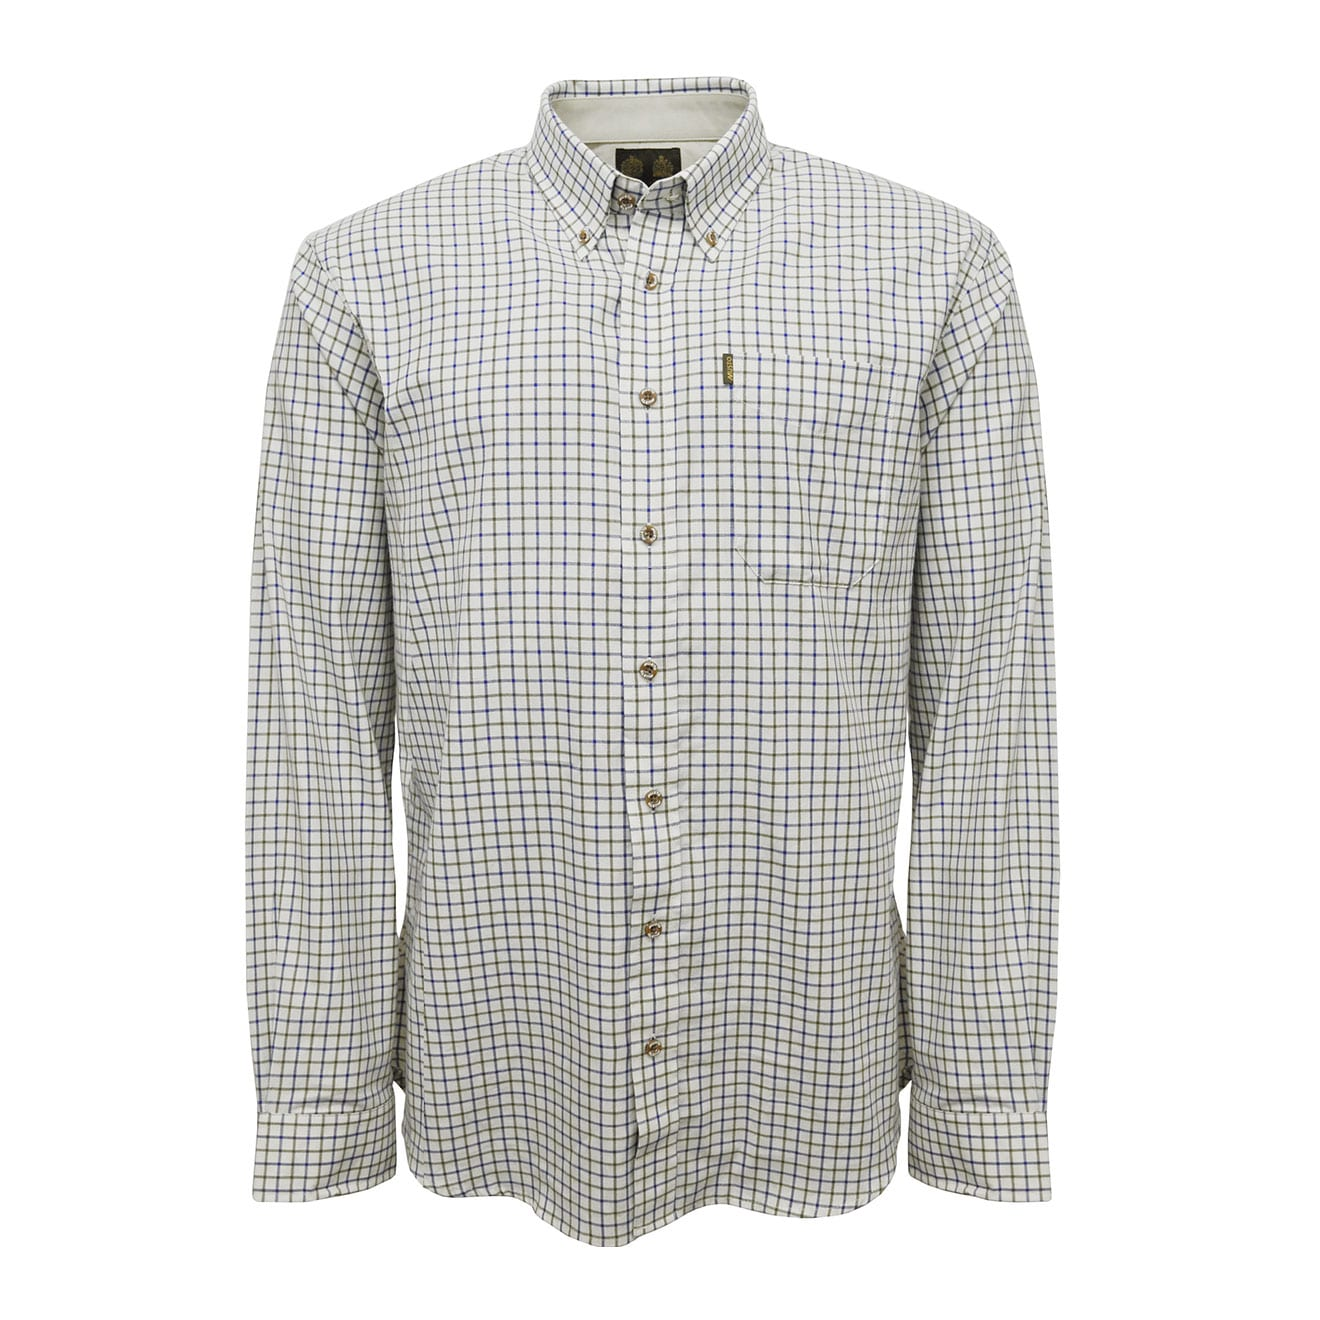 Musto Classic Button Down Shirt The Sporting Lodge